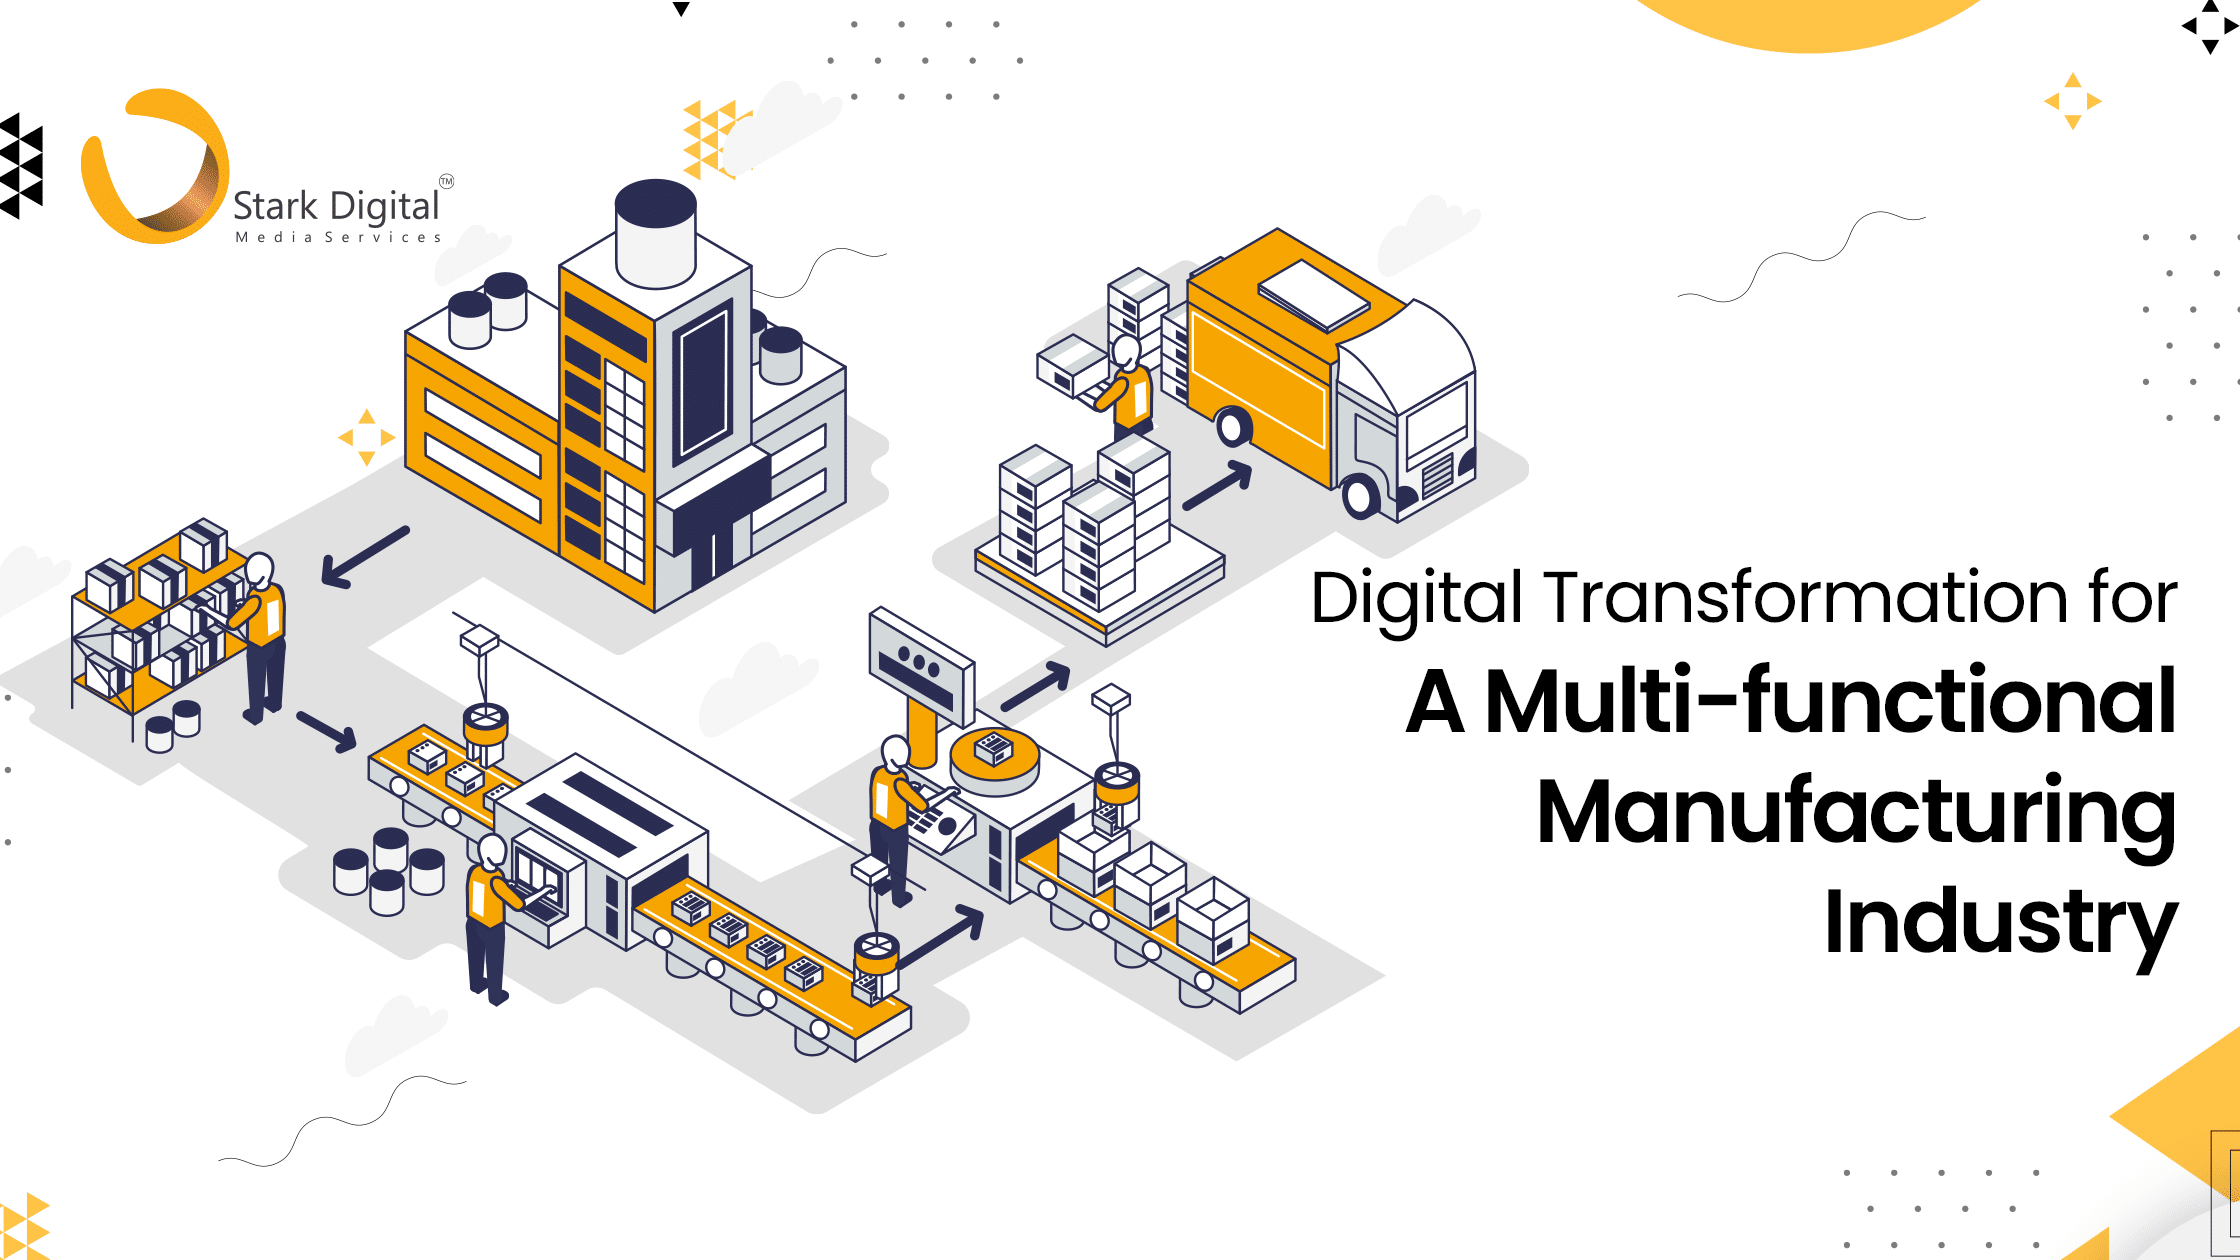 Digital Transformation for a Multi-functional Manufacturing Industry